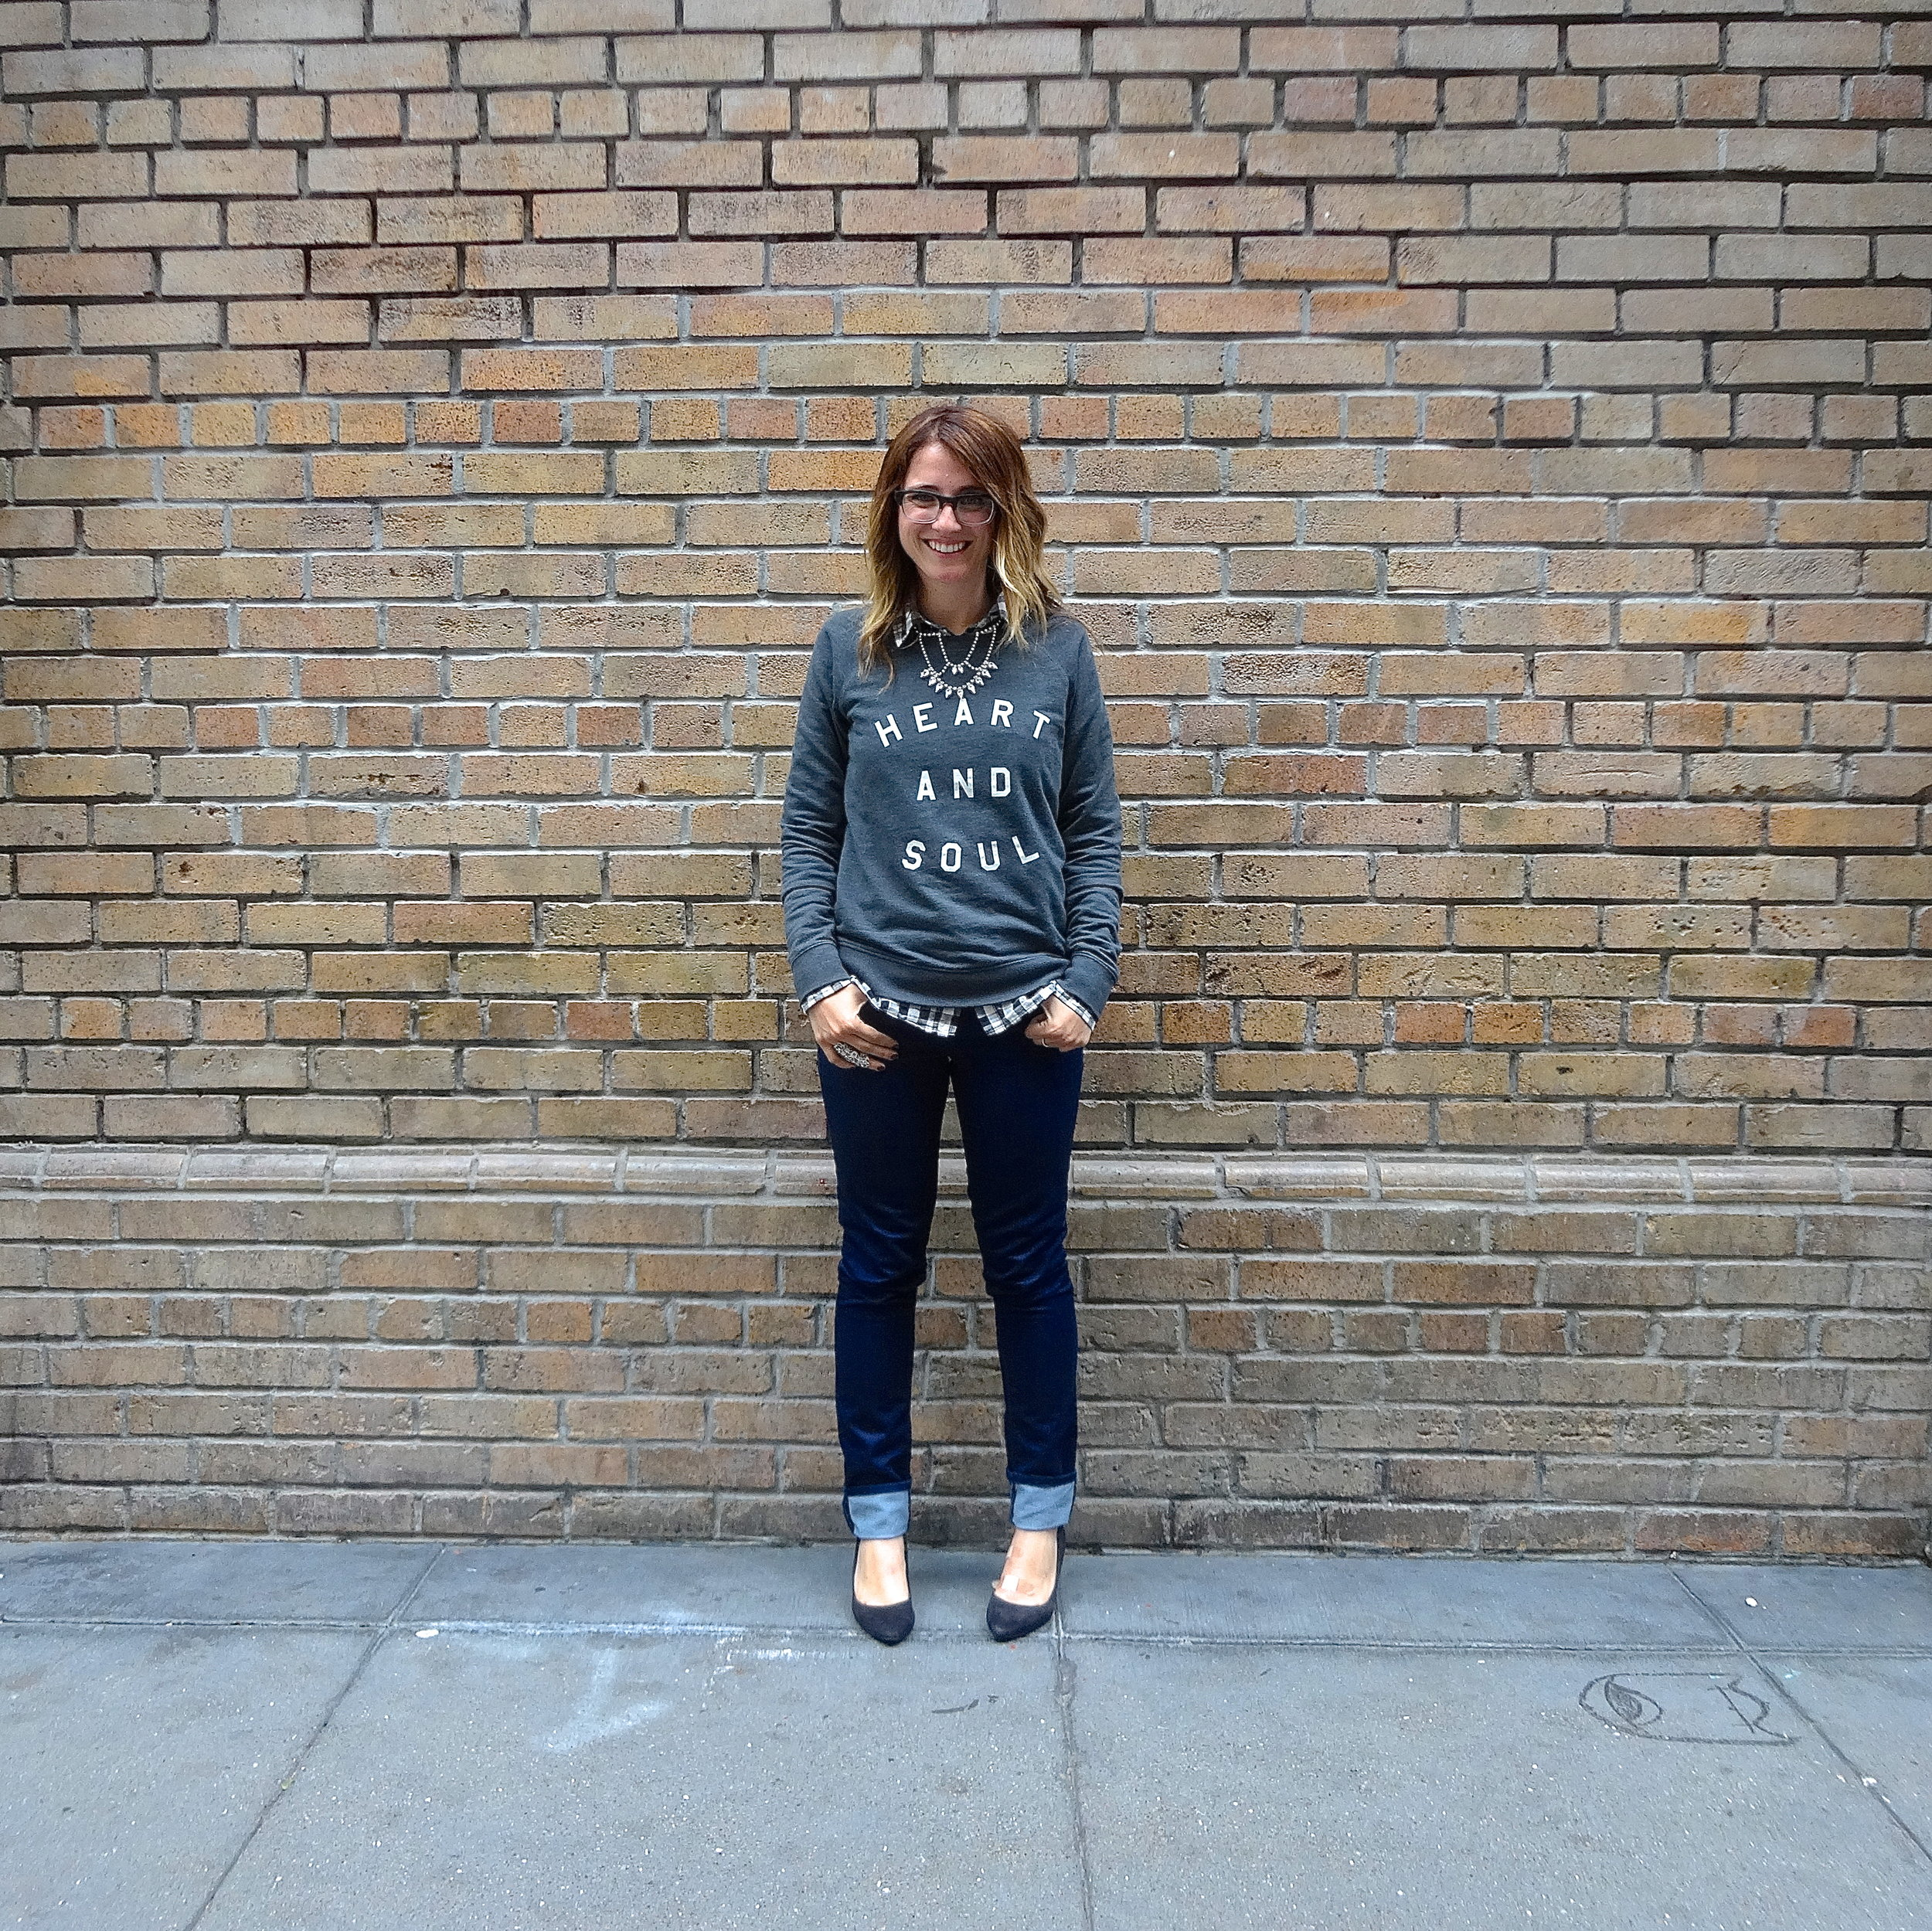 Sweatshirt: Old Navy   Shirt: F21 via Crossroads Trading   Jeans: Gap   Shoes: H&M   Necklace: F21